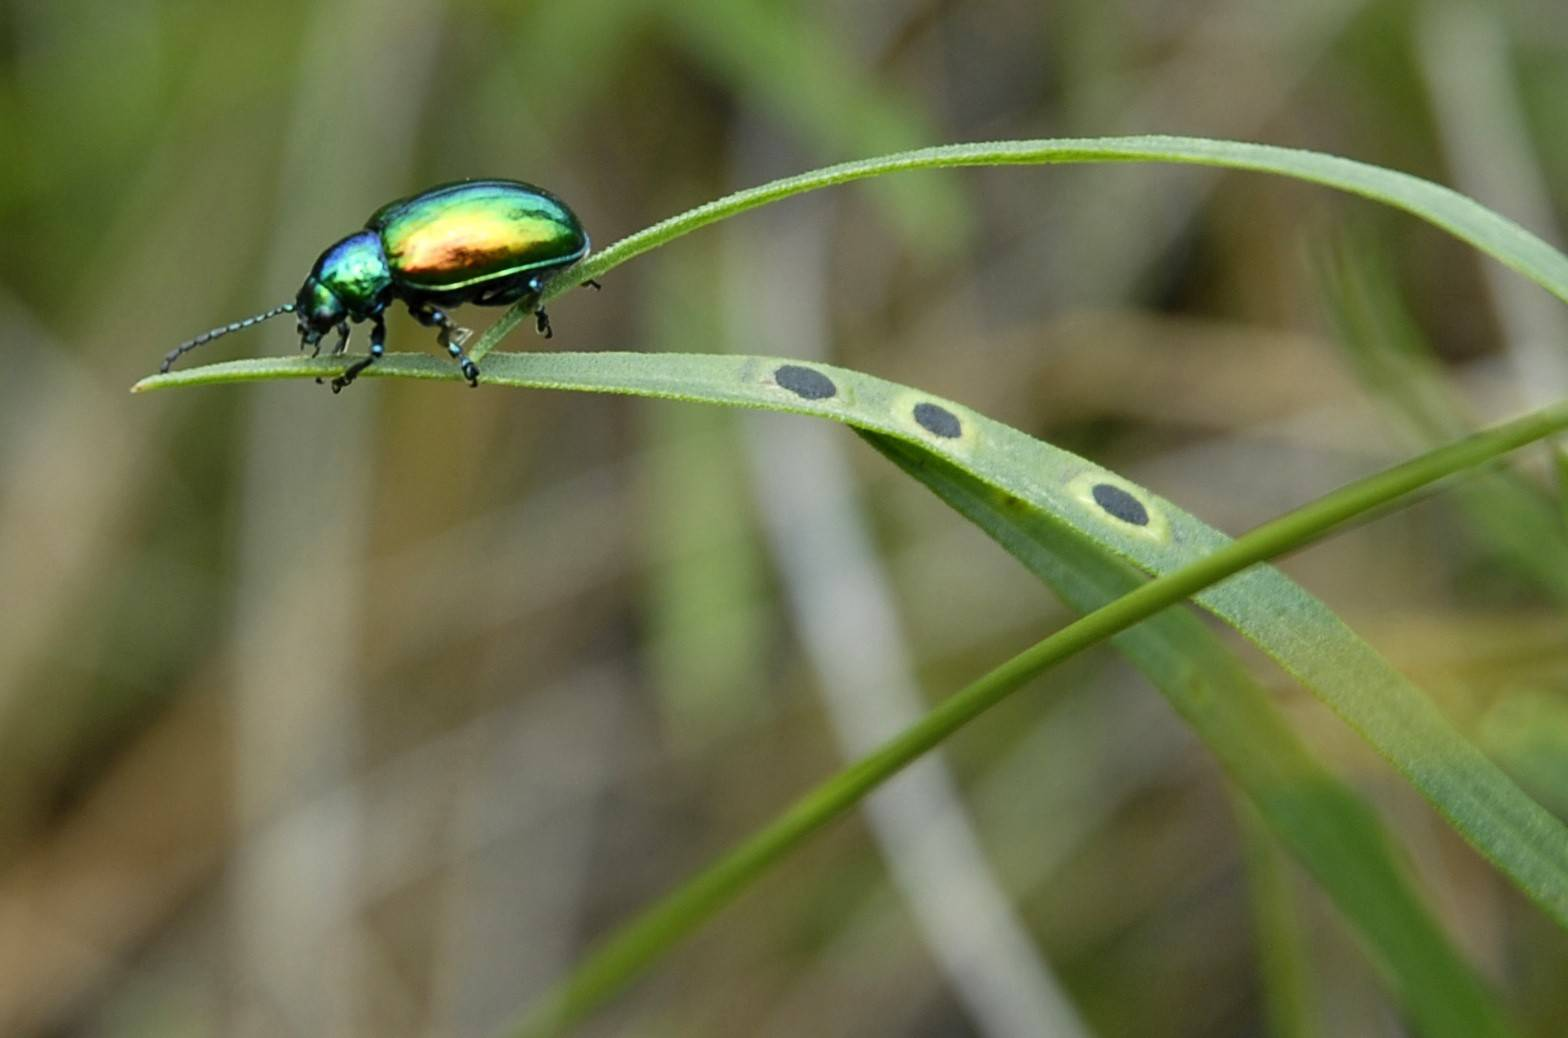 The cold winter may have reduced the number of Japanese beetles. Overall, however, experts say this year's brutal winter won't have lingering effects on suburban plants and wildlife.